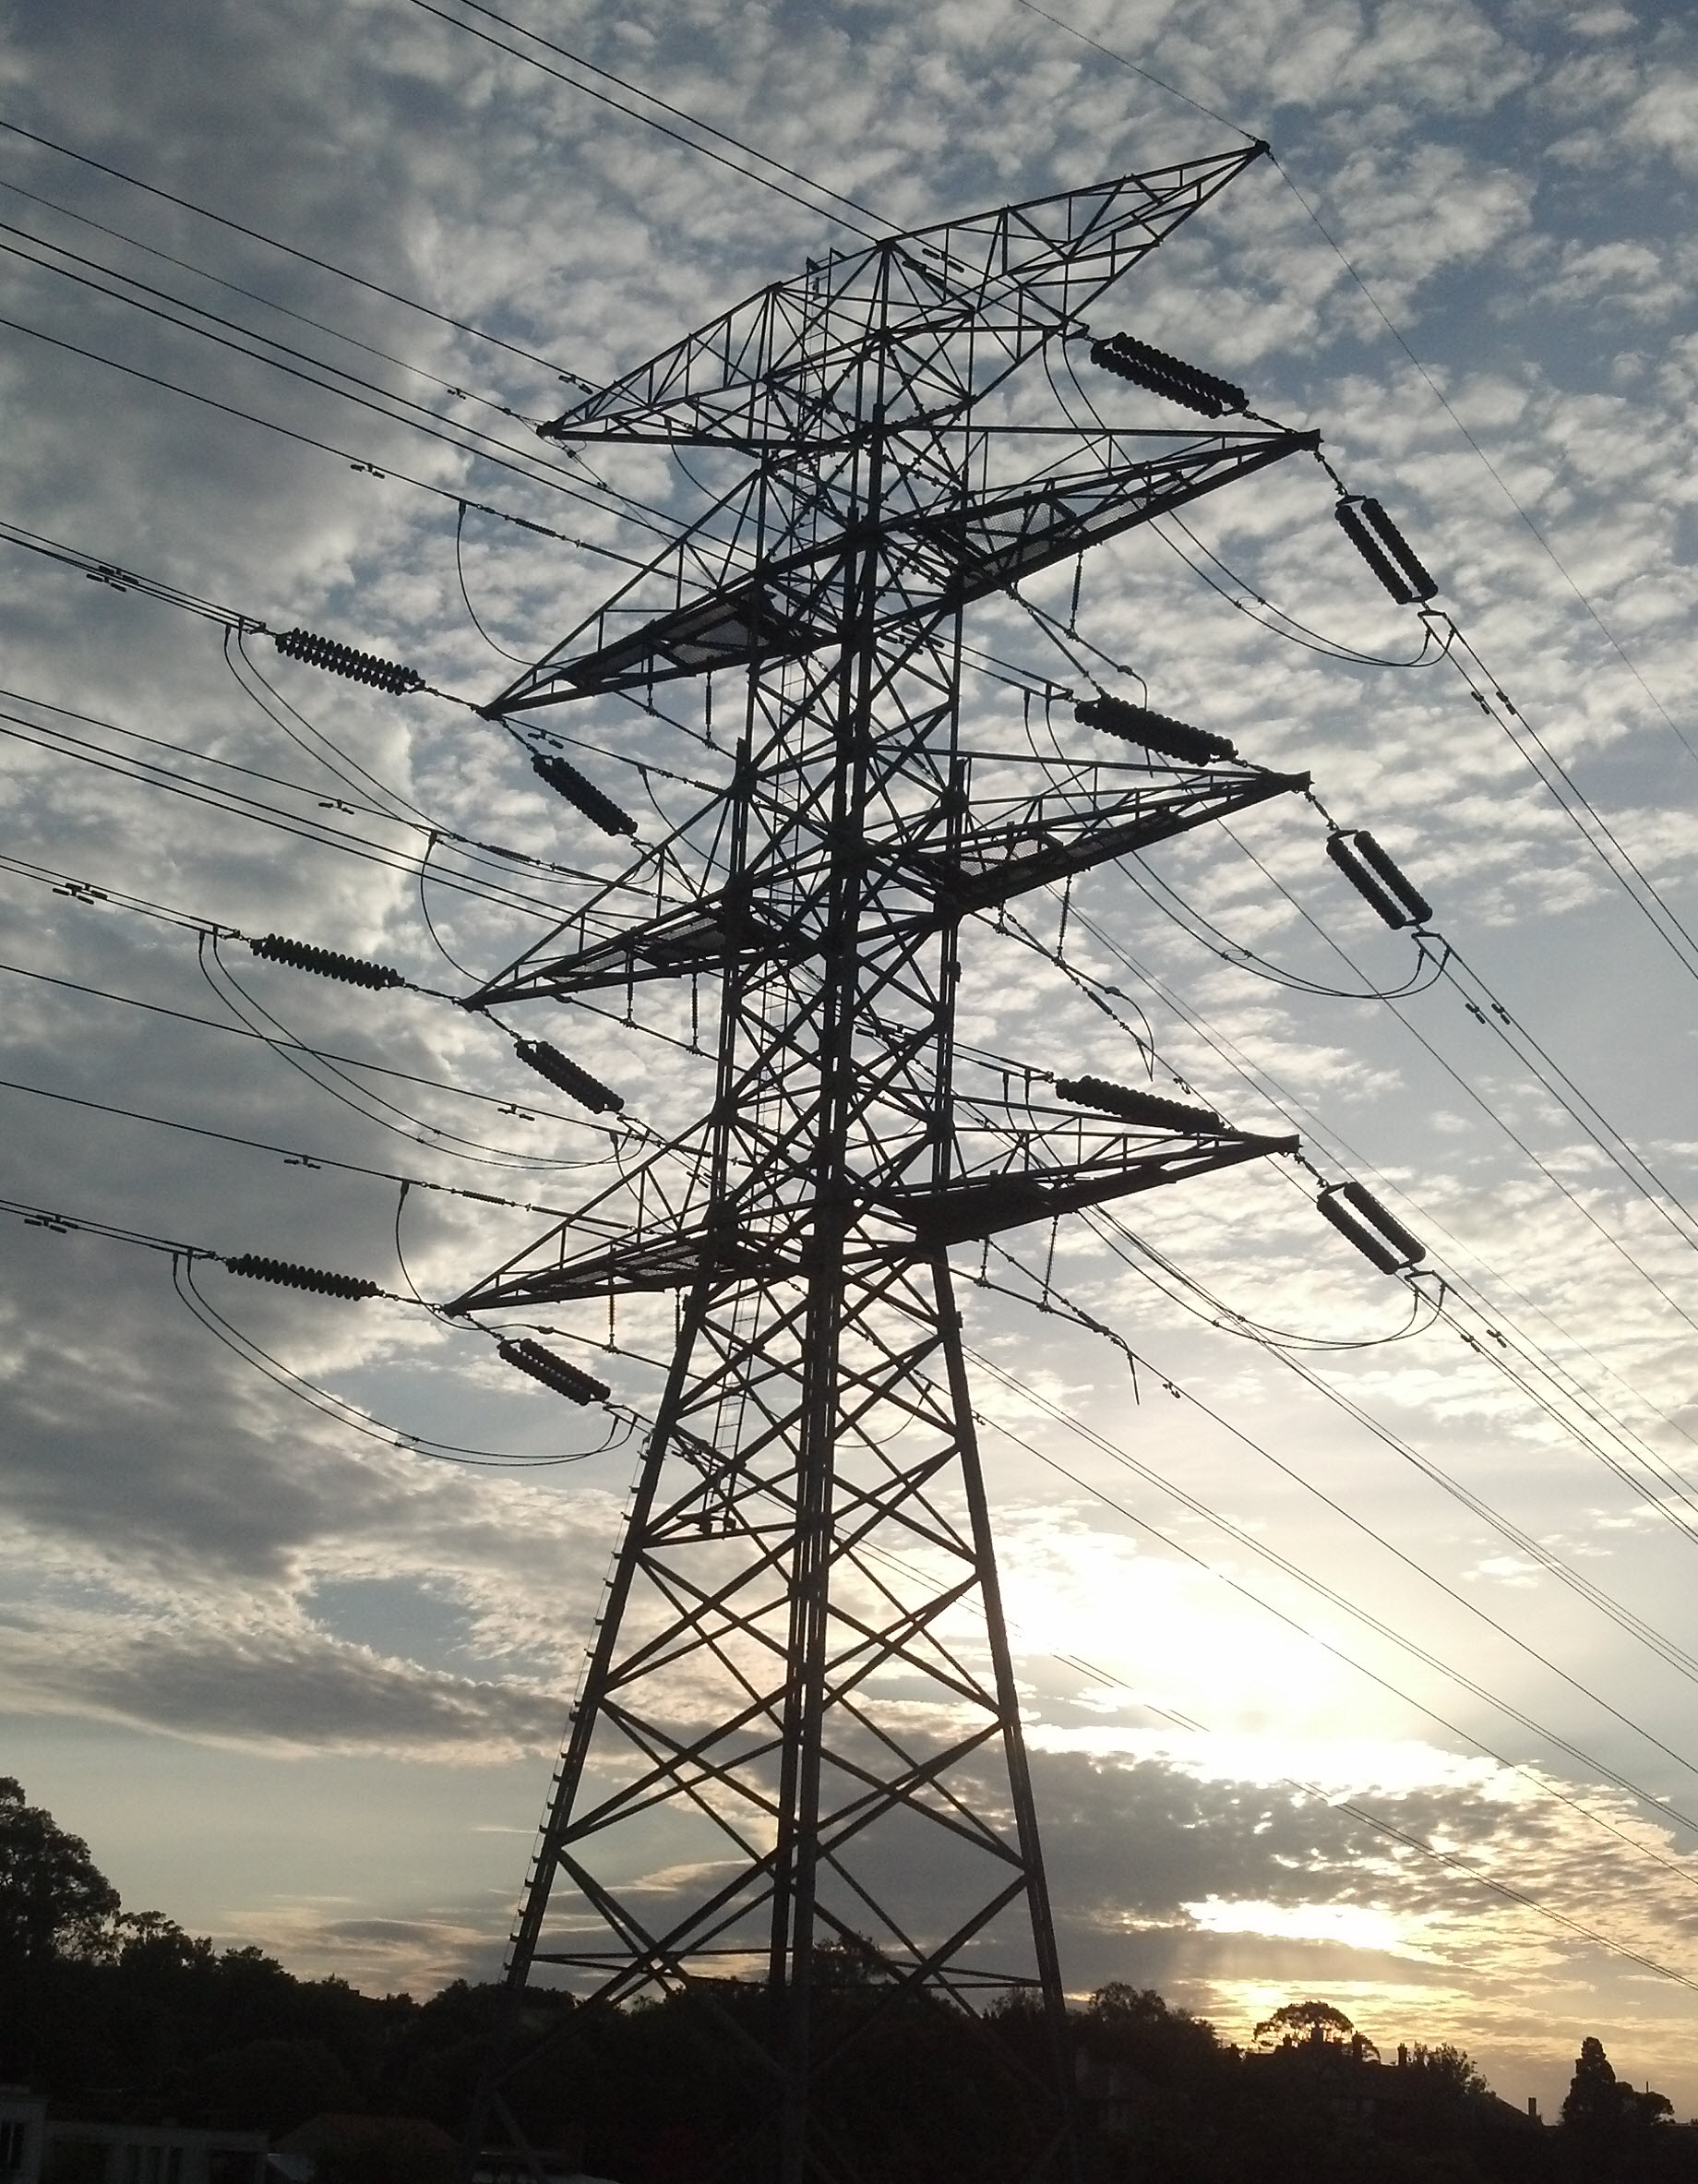 Power Pylon 2015-12-05 19.44.29